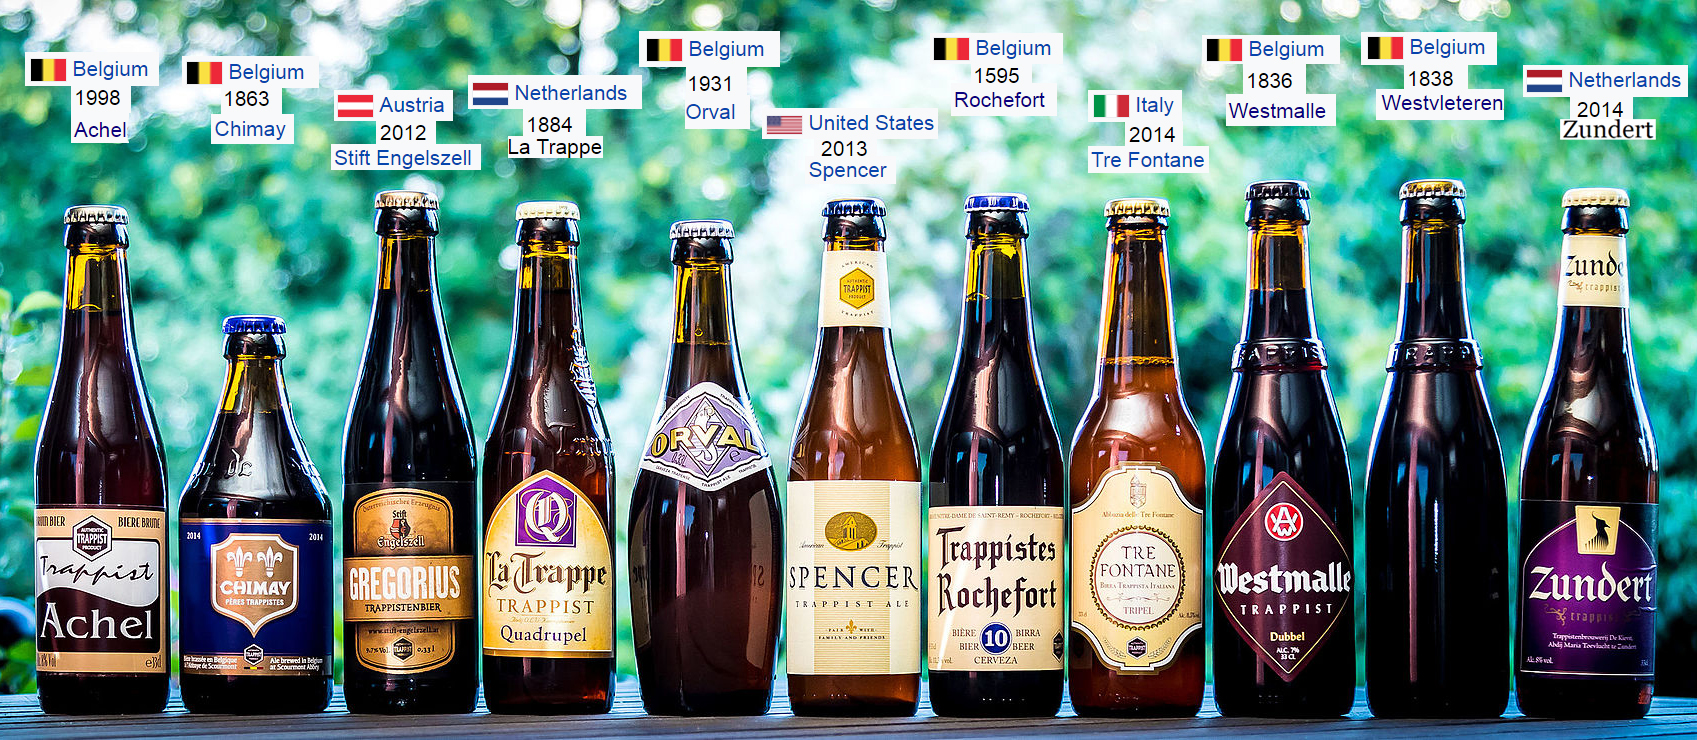 https://upload.wikimedia.org/wikipedia/commons/0/01/Trappist_Beer_2015-08-15.jpg